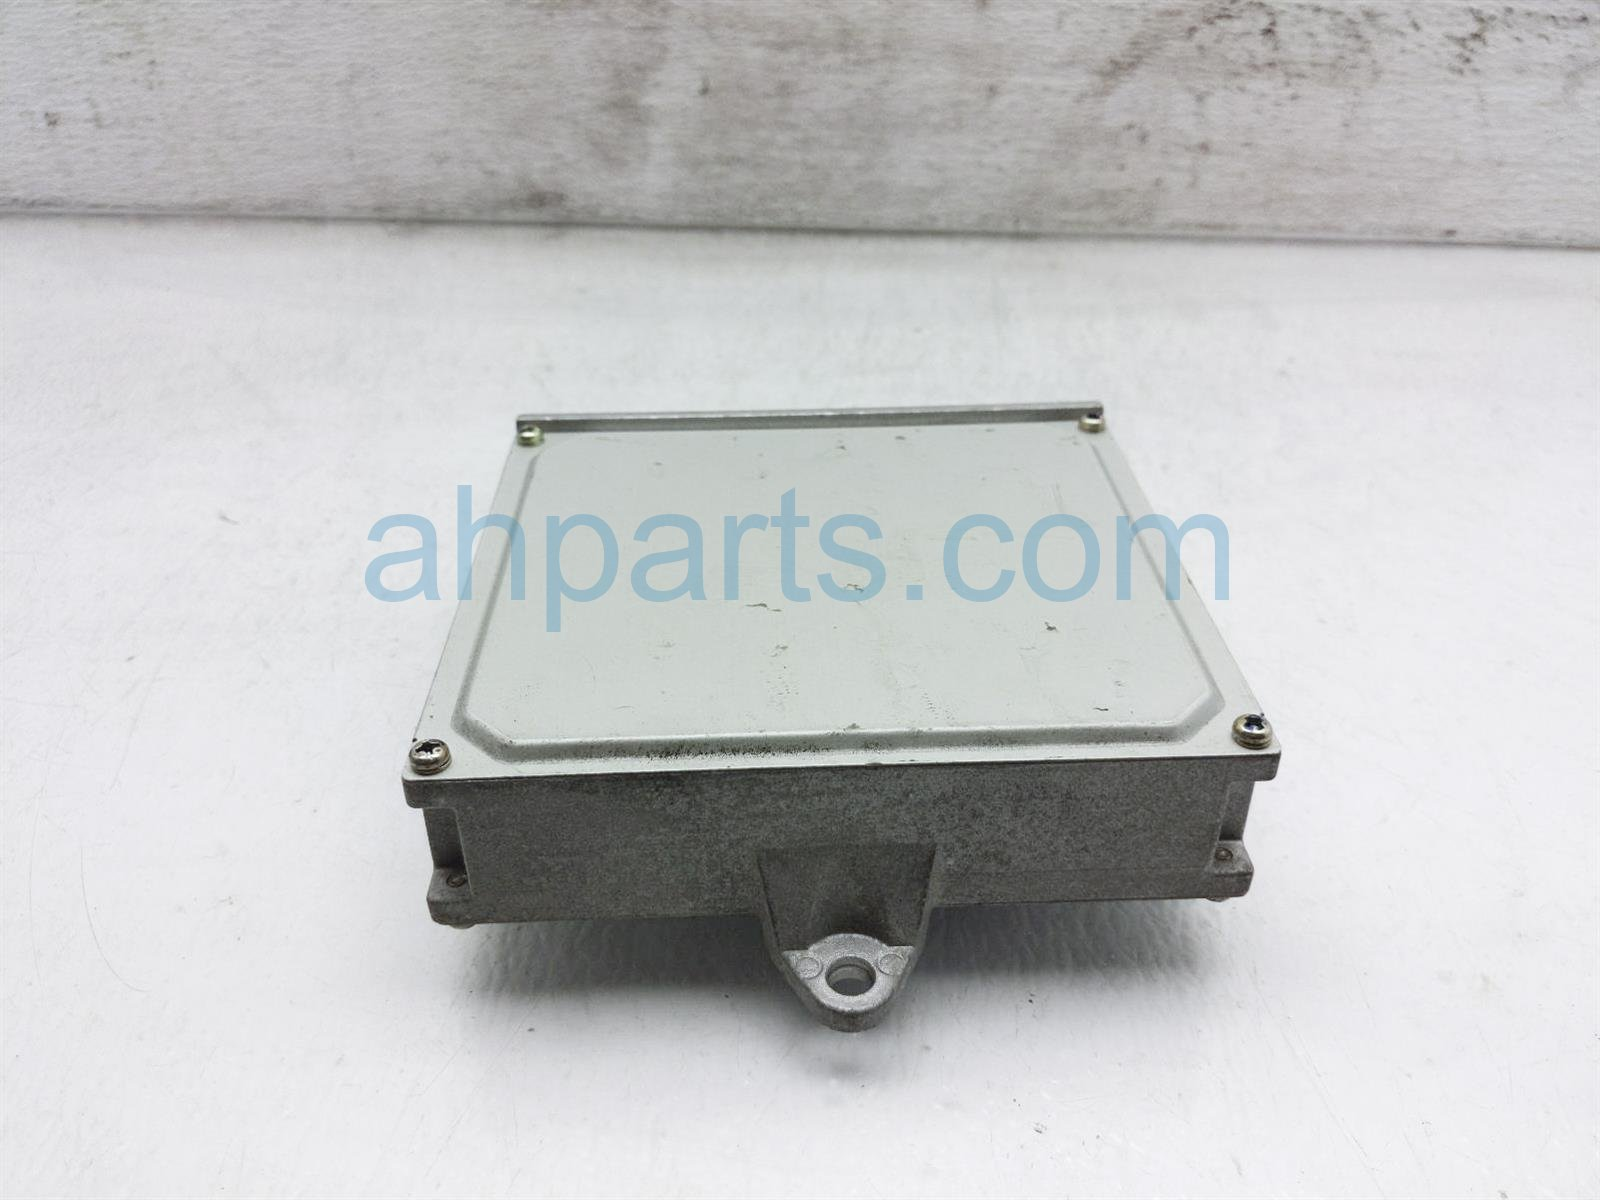 2003 Honda Insight Transmission Control Unit 28100 PHM A02 Replacement